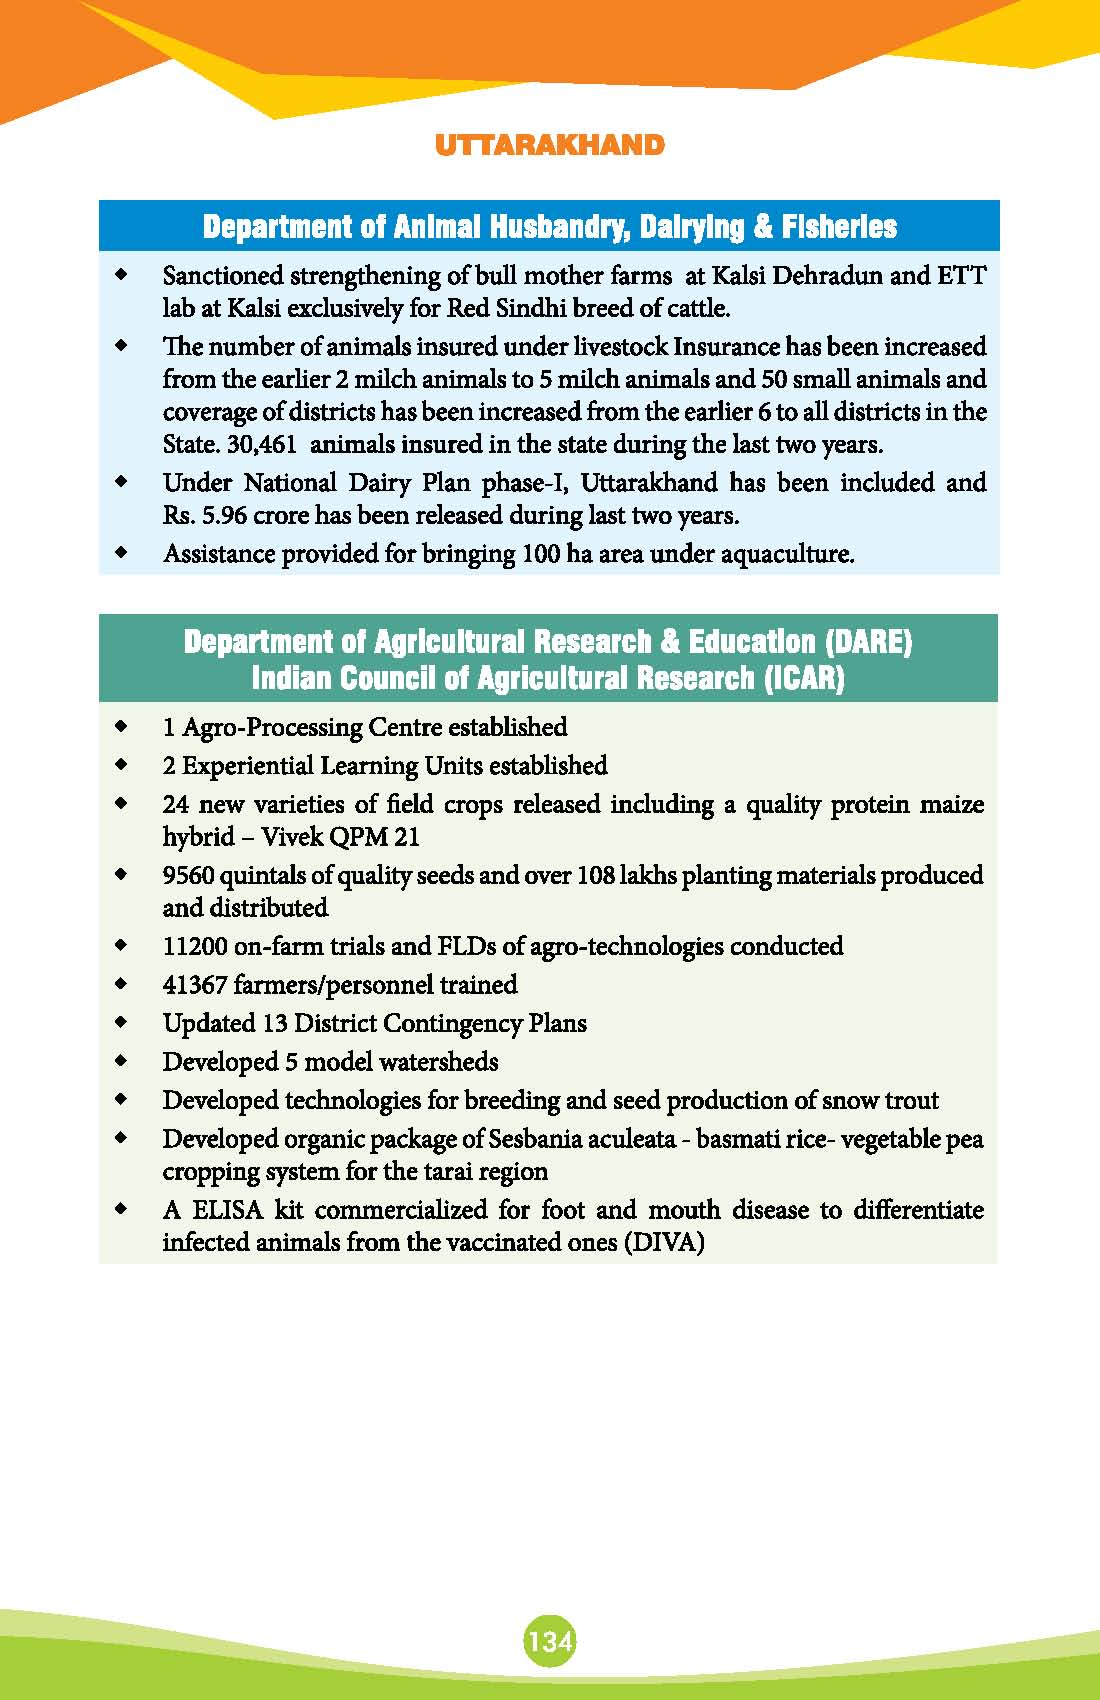 State-Wise-Achievements-2 years_Page_142